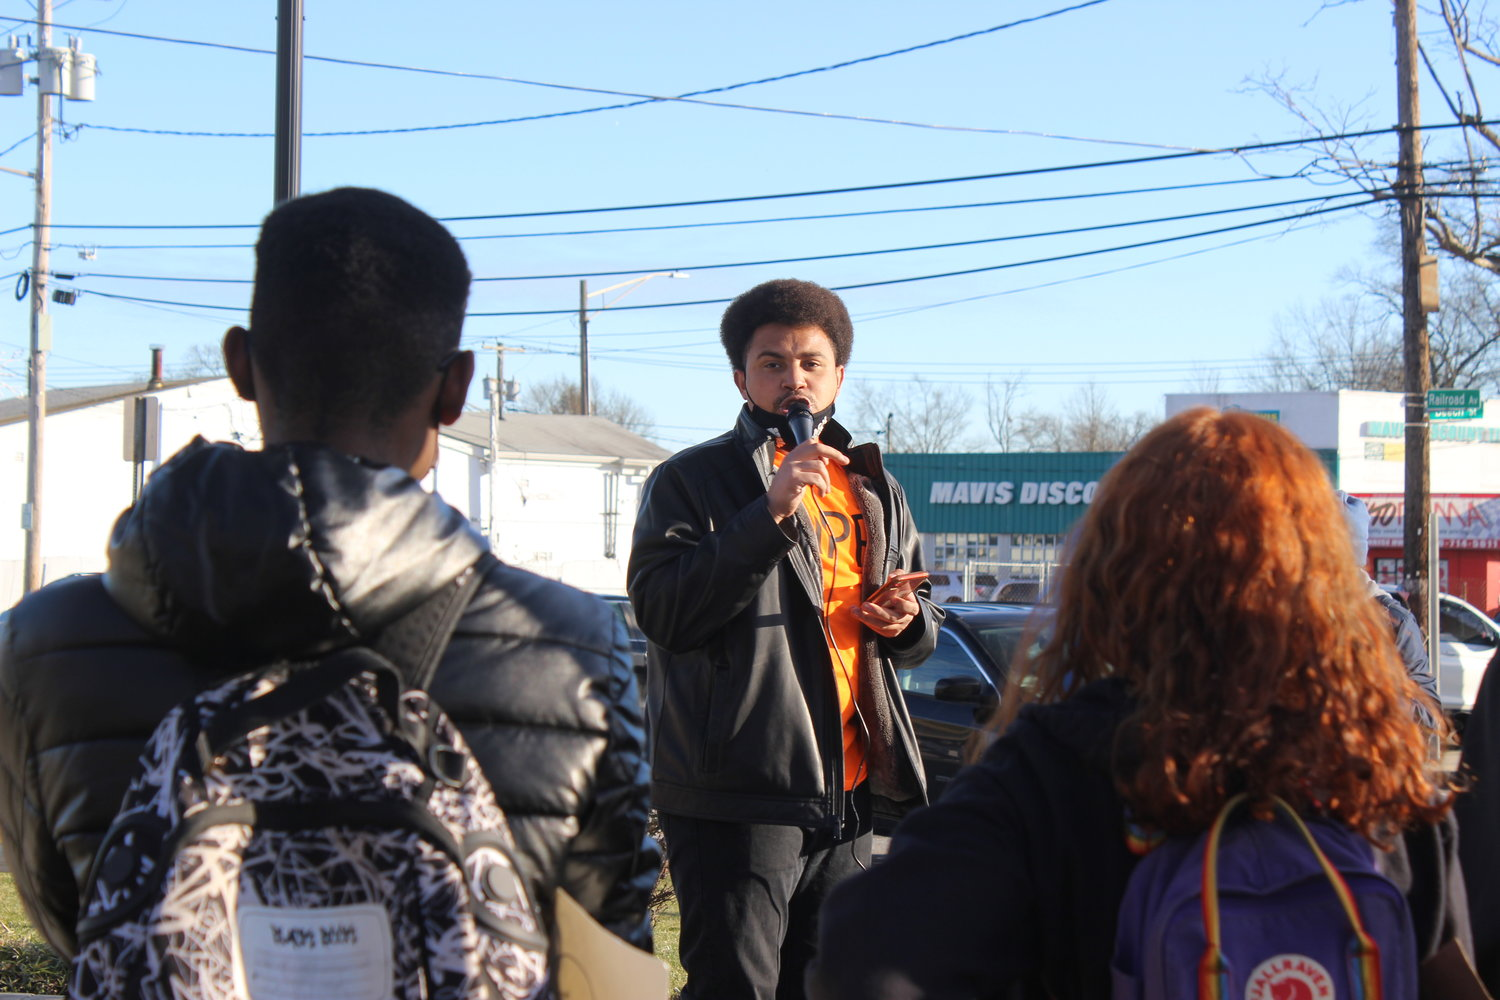 Black Lives Matter protesters gathered at the Wantagh Long Island Rail Road station last Saturday in response to the violence at the U.S. Capitol on Jan. 6. Terrel Tuosto, 28, of West Hempstead, addressed the group before they marched through Wantagh.